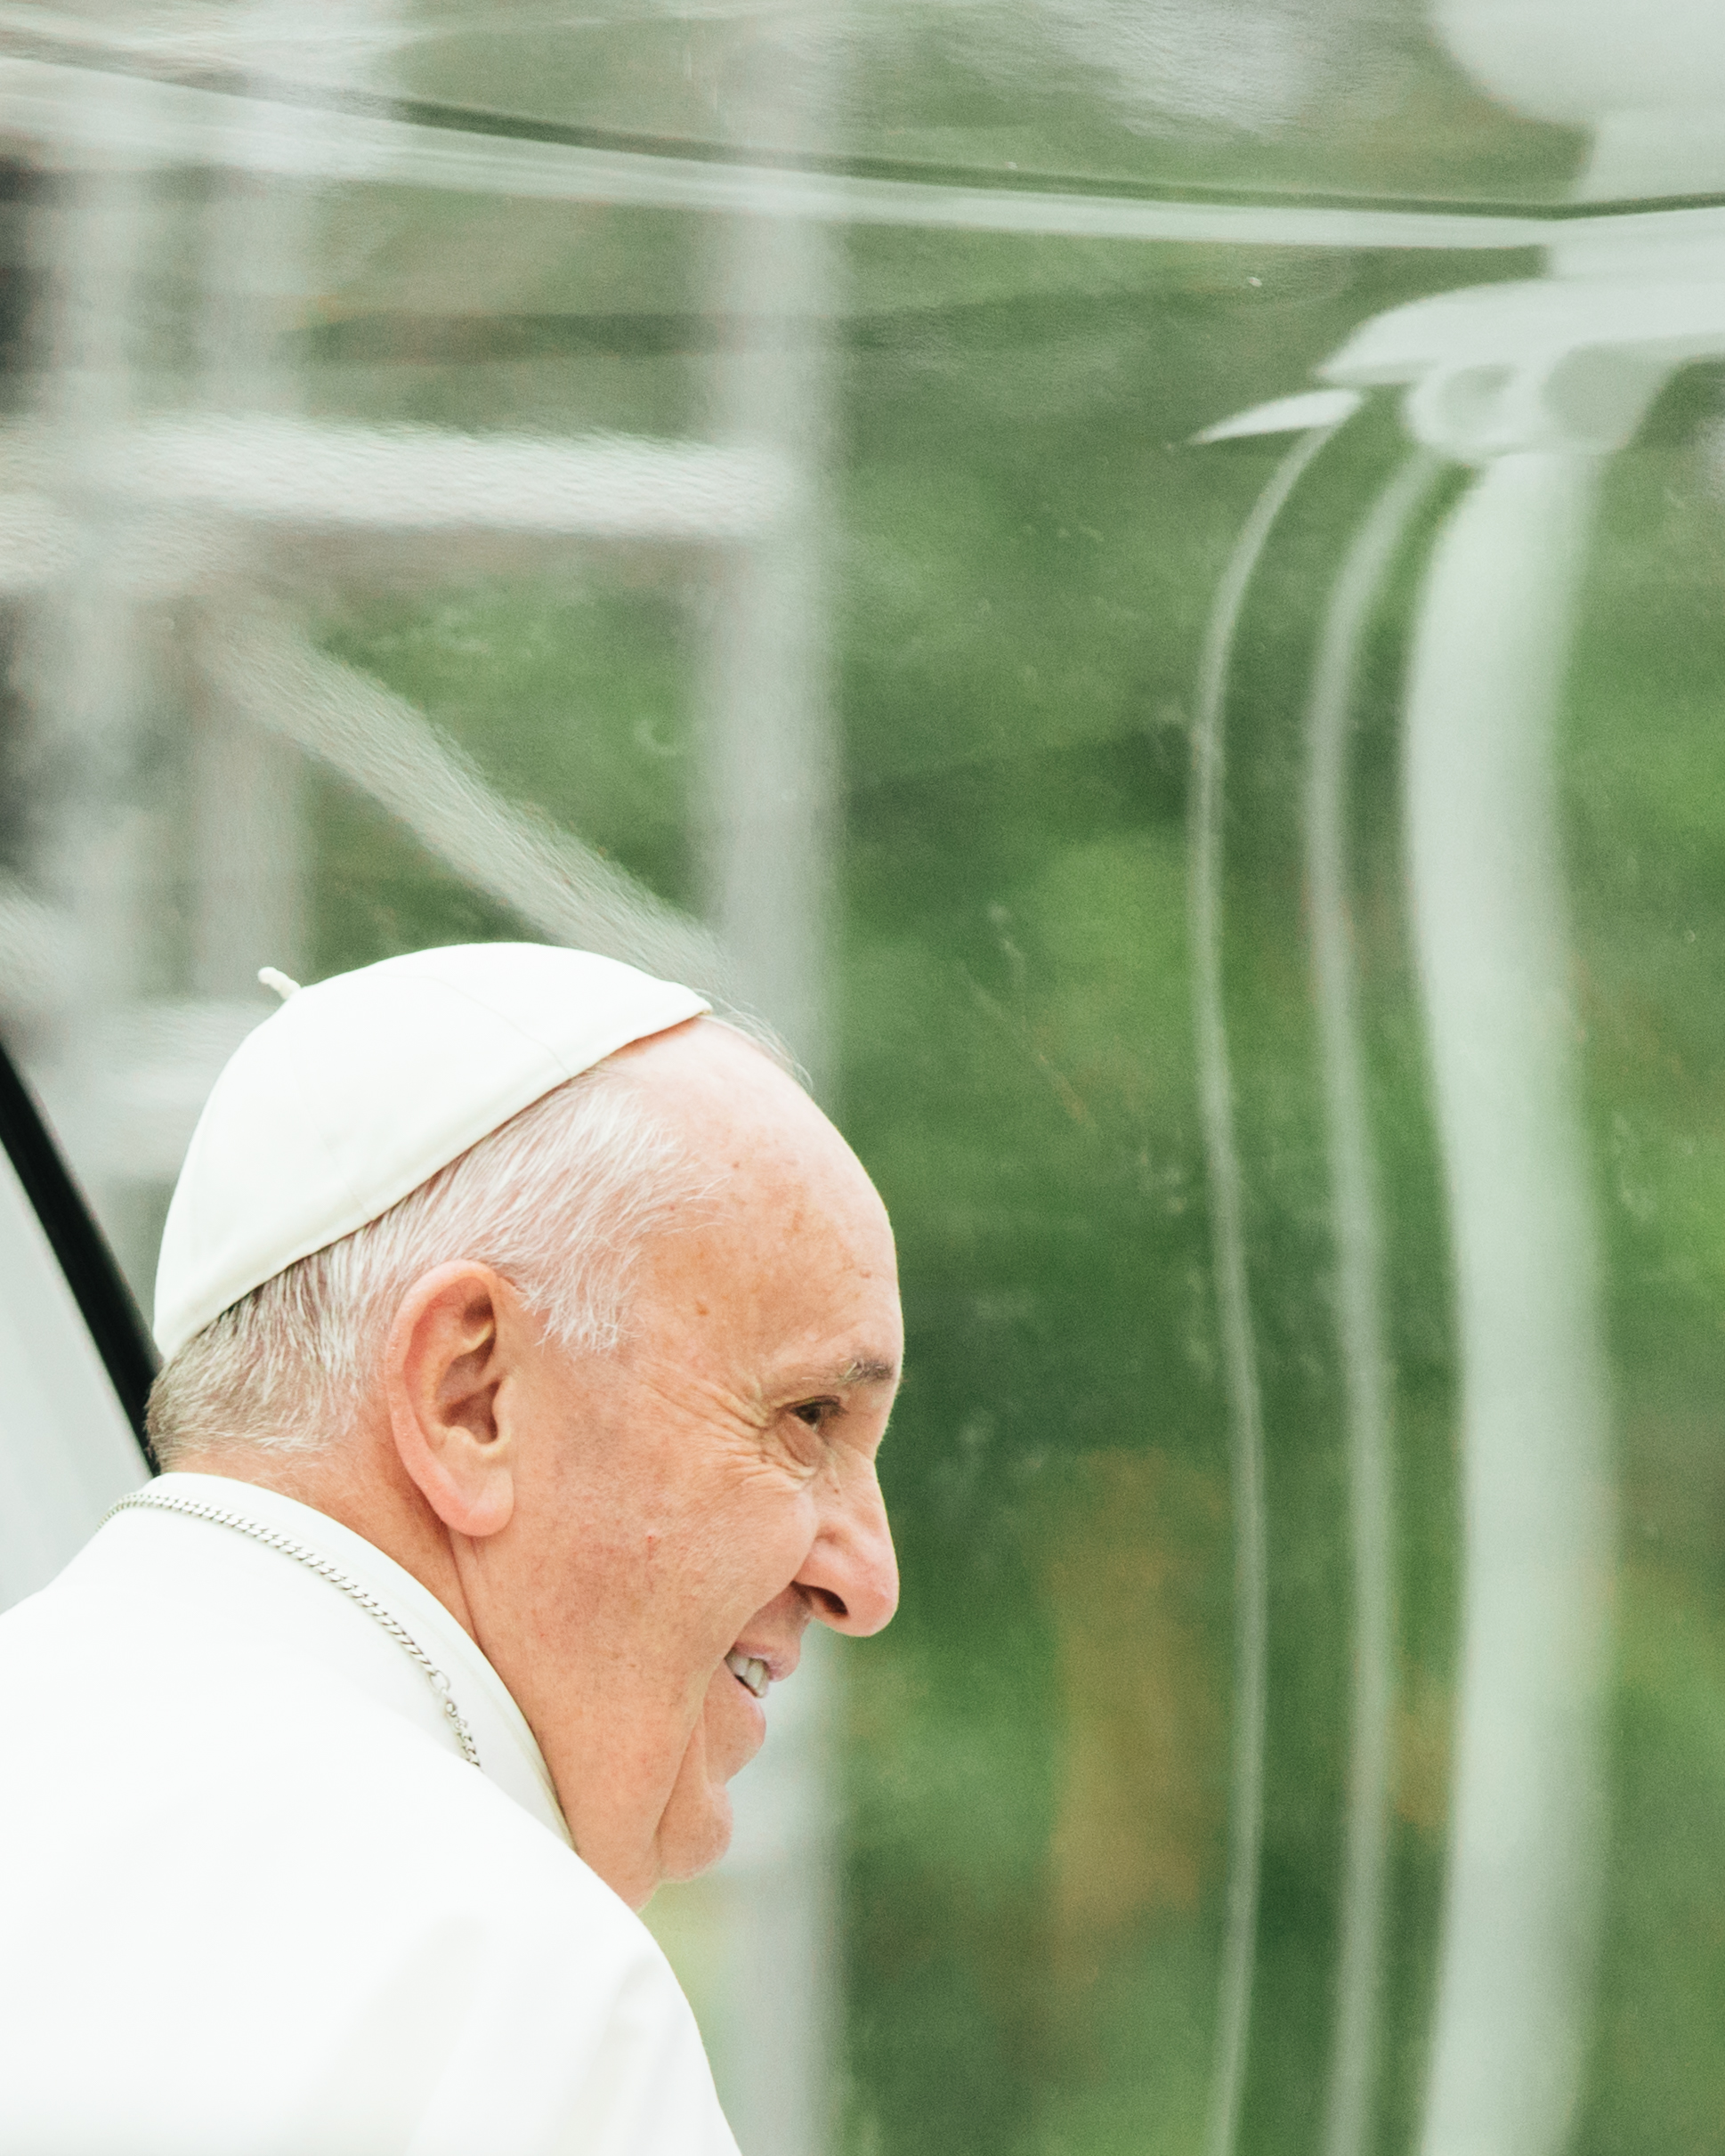 Pope Francis in the Popemobile in United States